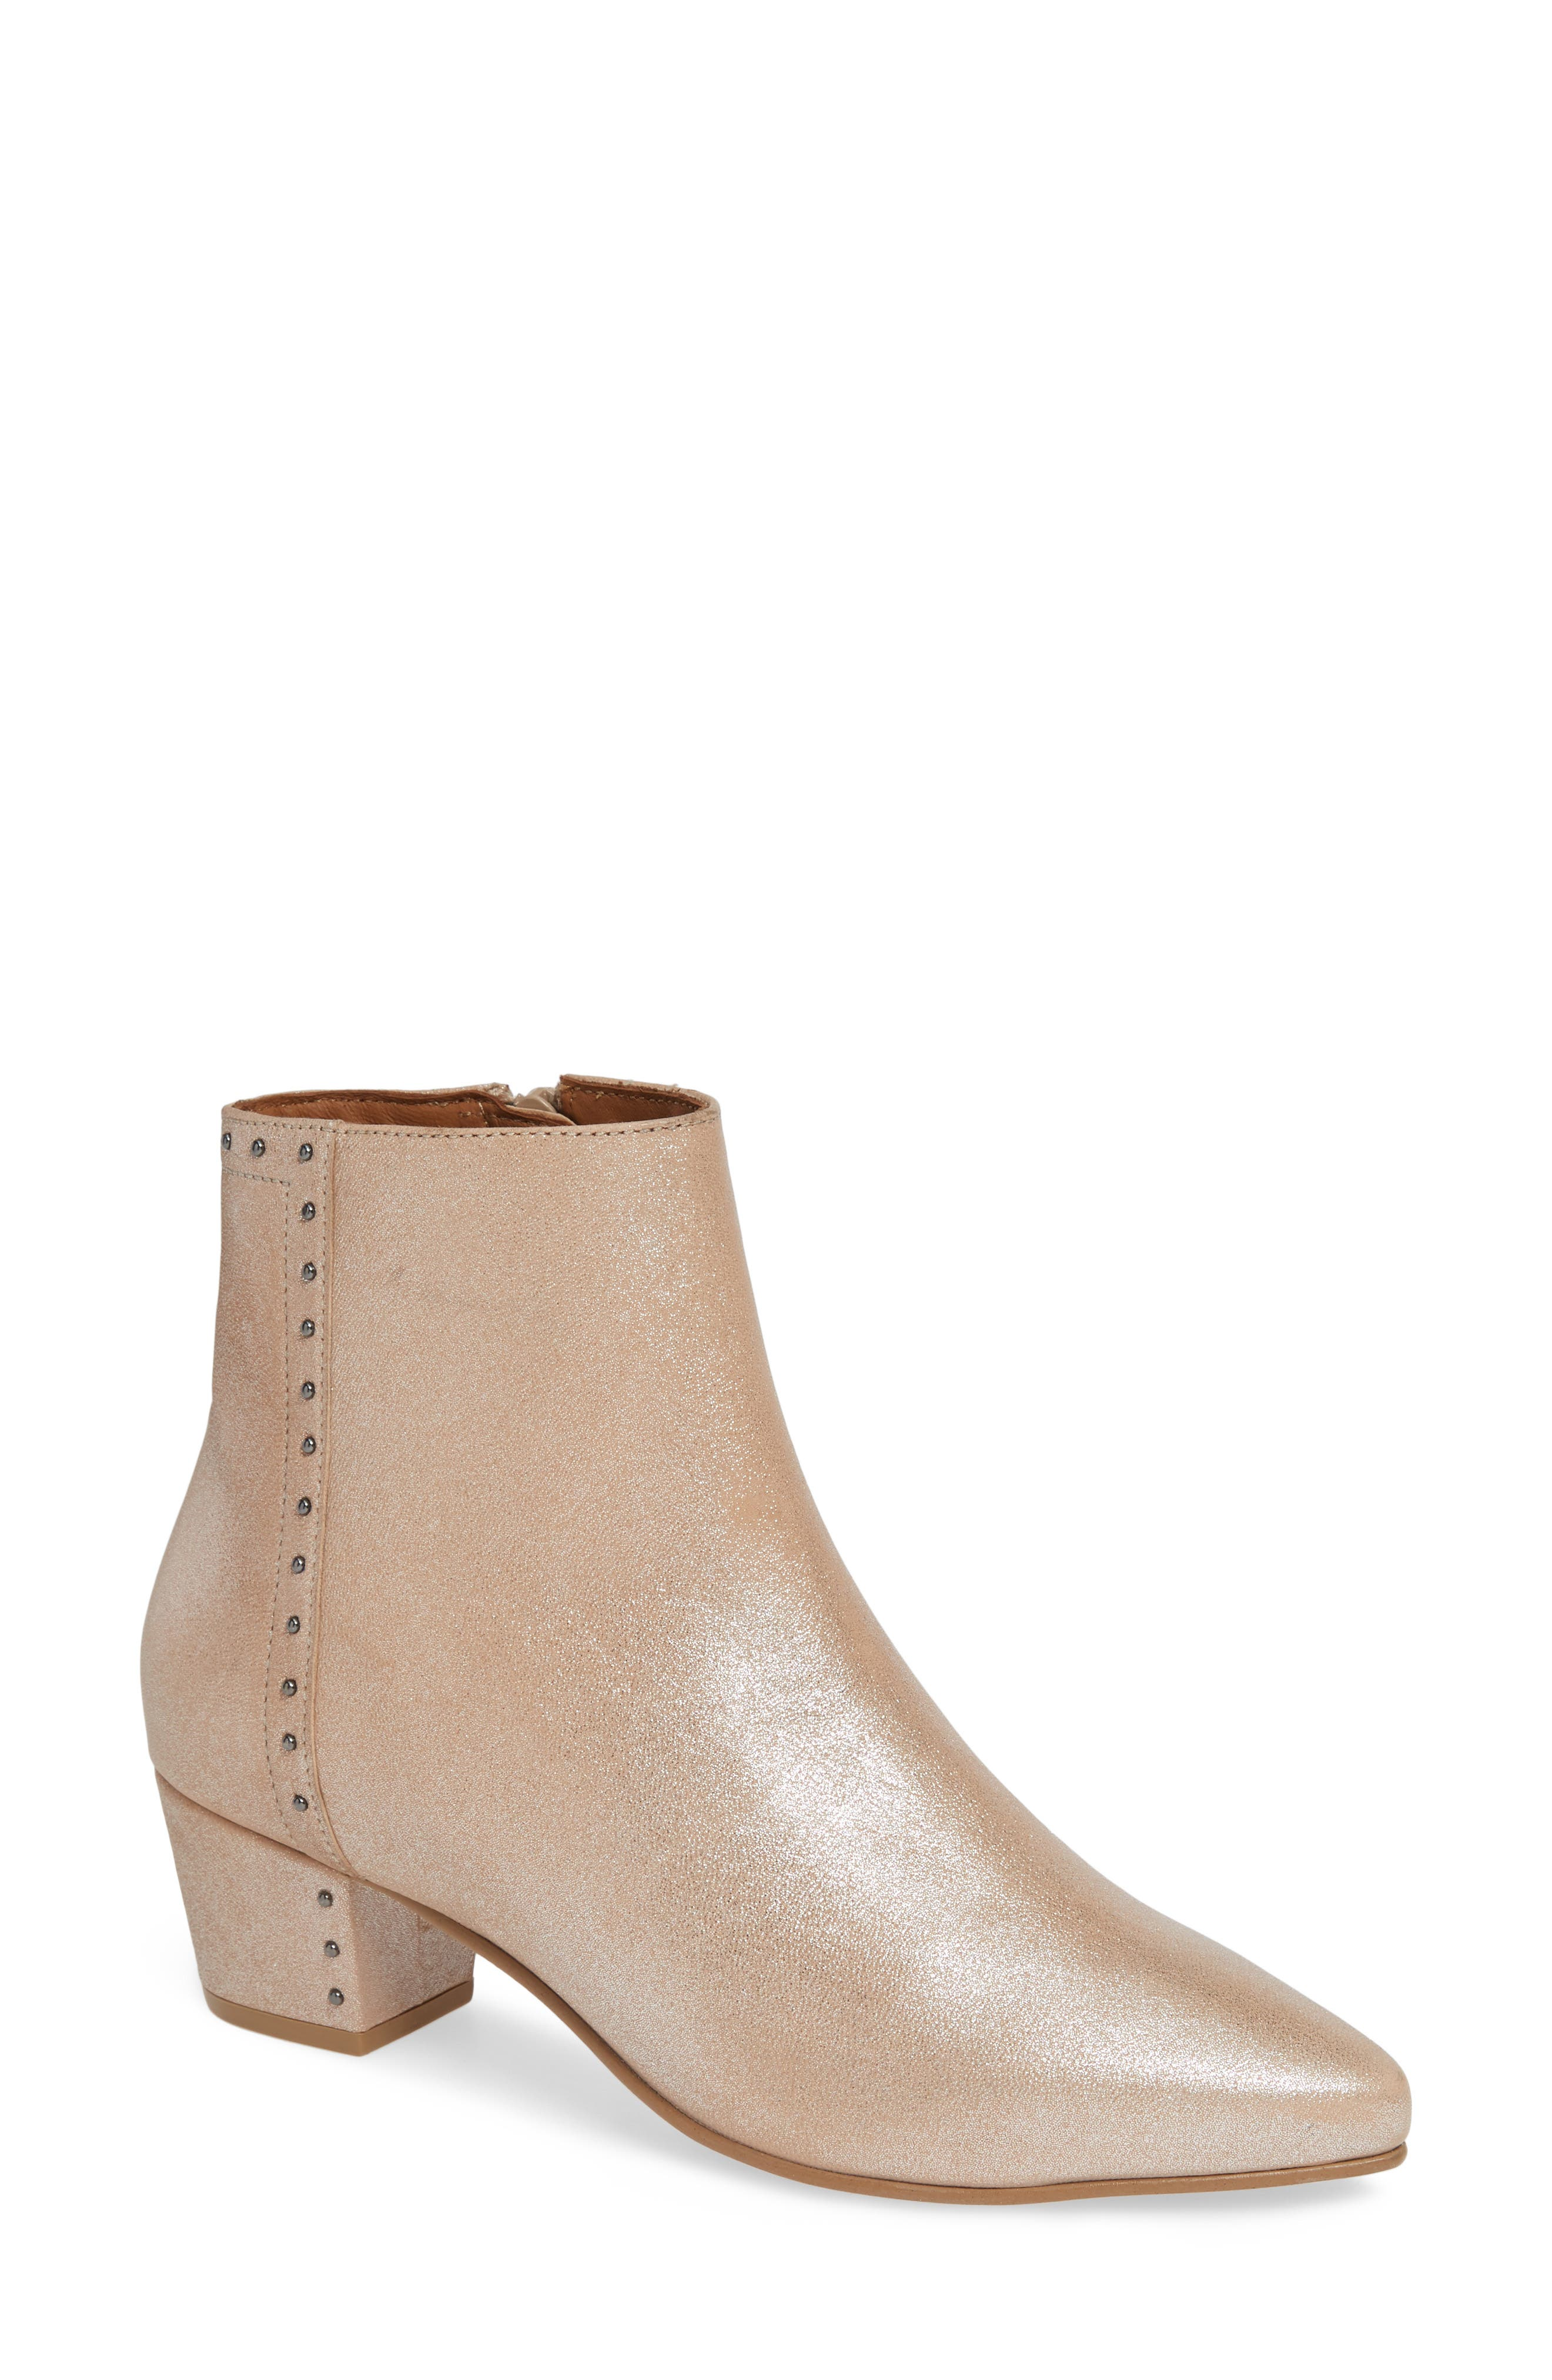 SEYCHELLES Wake Up Bootie, Main, color, BLUSH METALLIC LEATHER